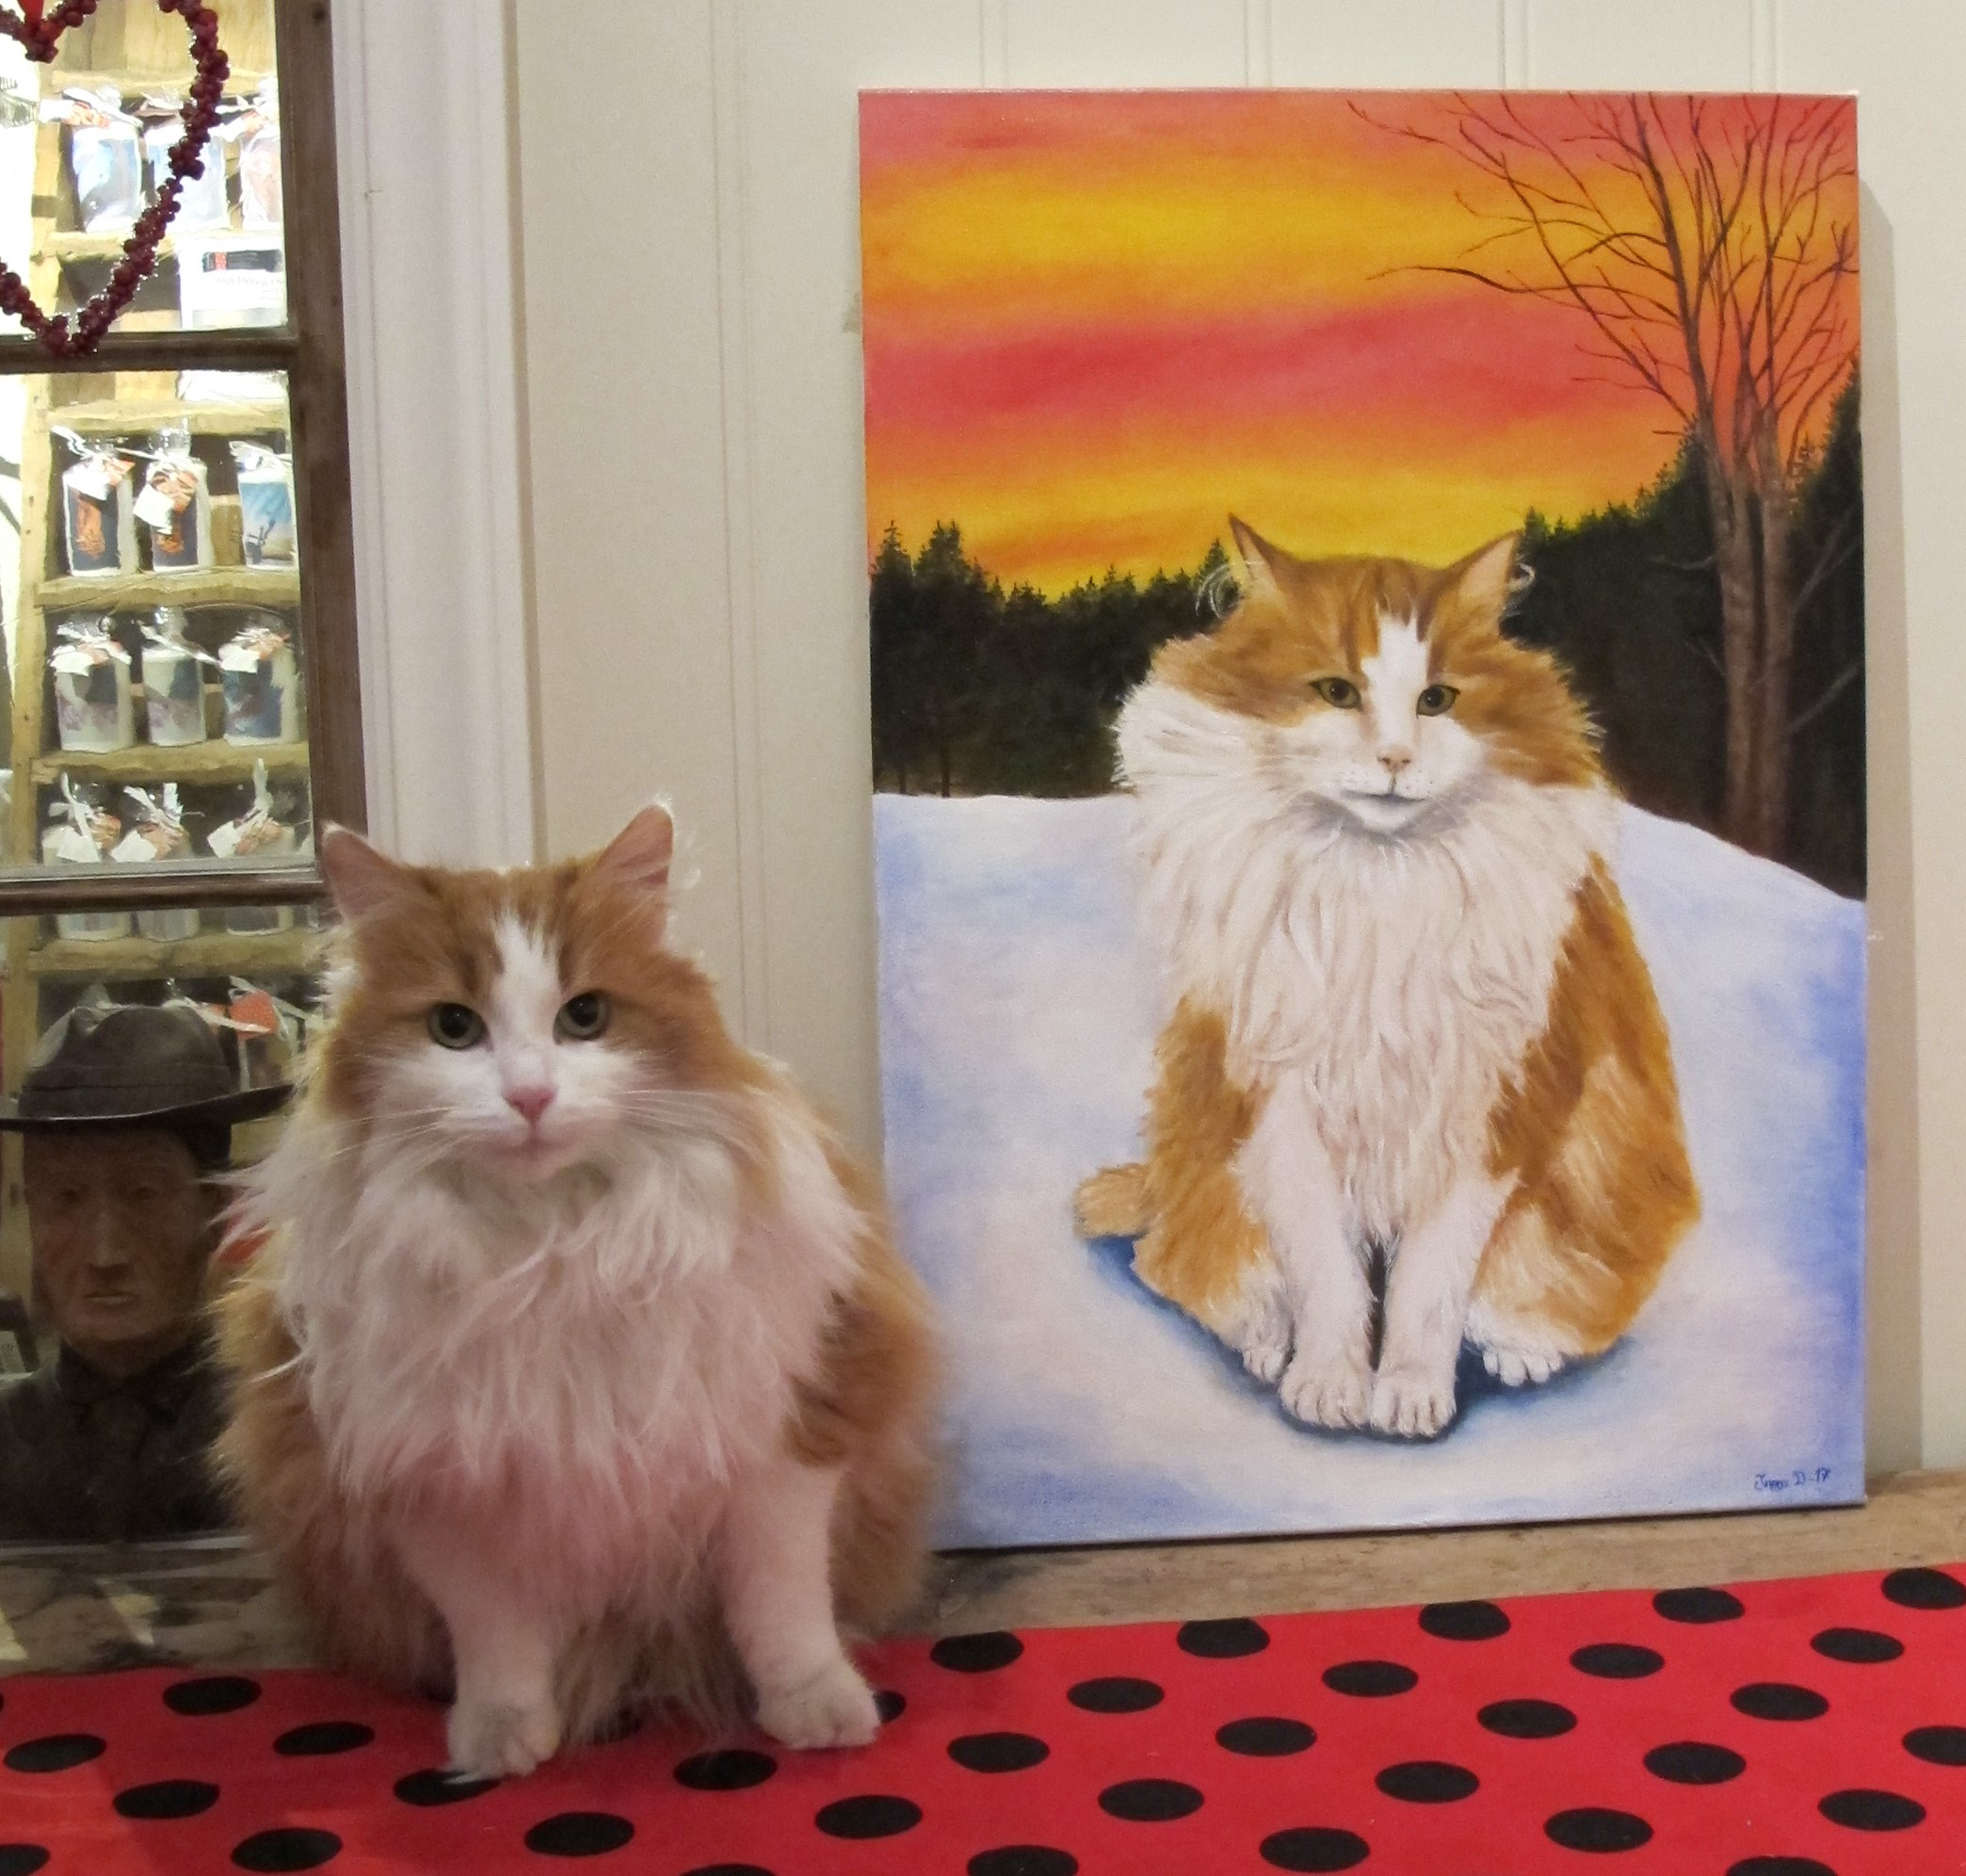 The cat Pusur visited to check on his portrait